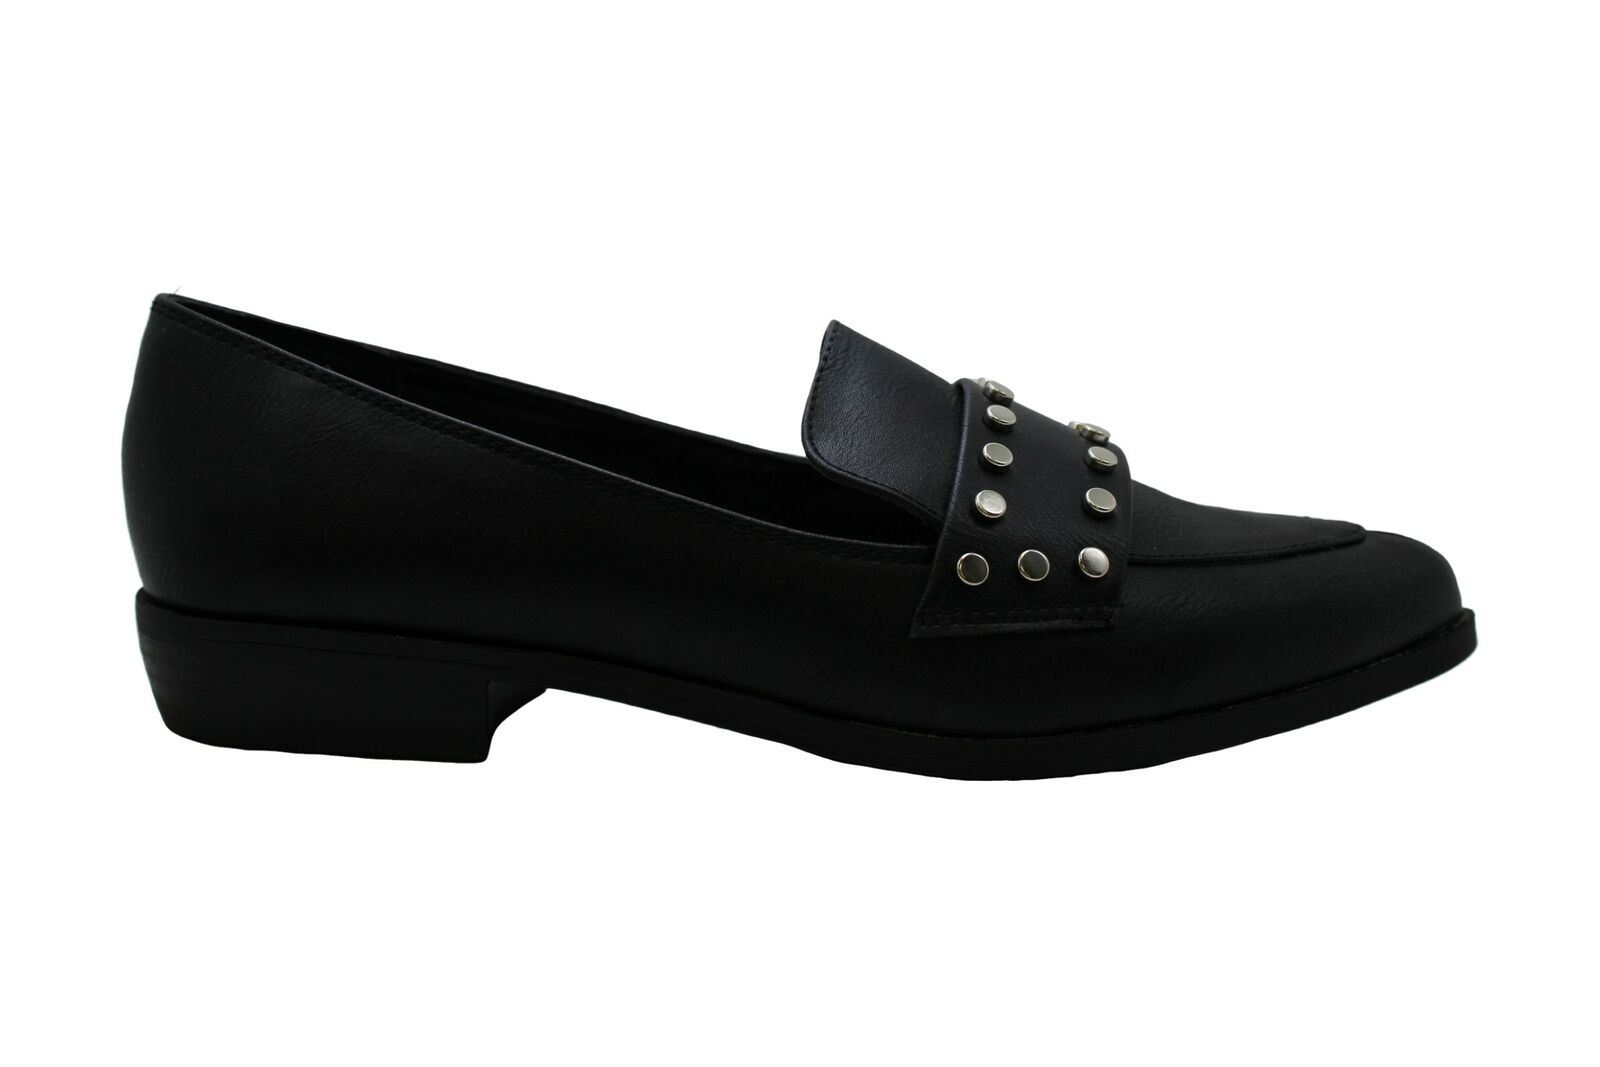 Bar III Womens Involve Pointed Toe Loafers, Black SM, Size 6.5 Ol1f US